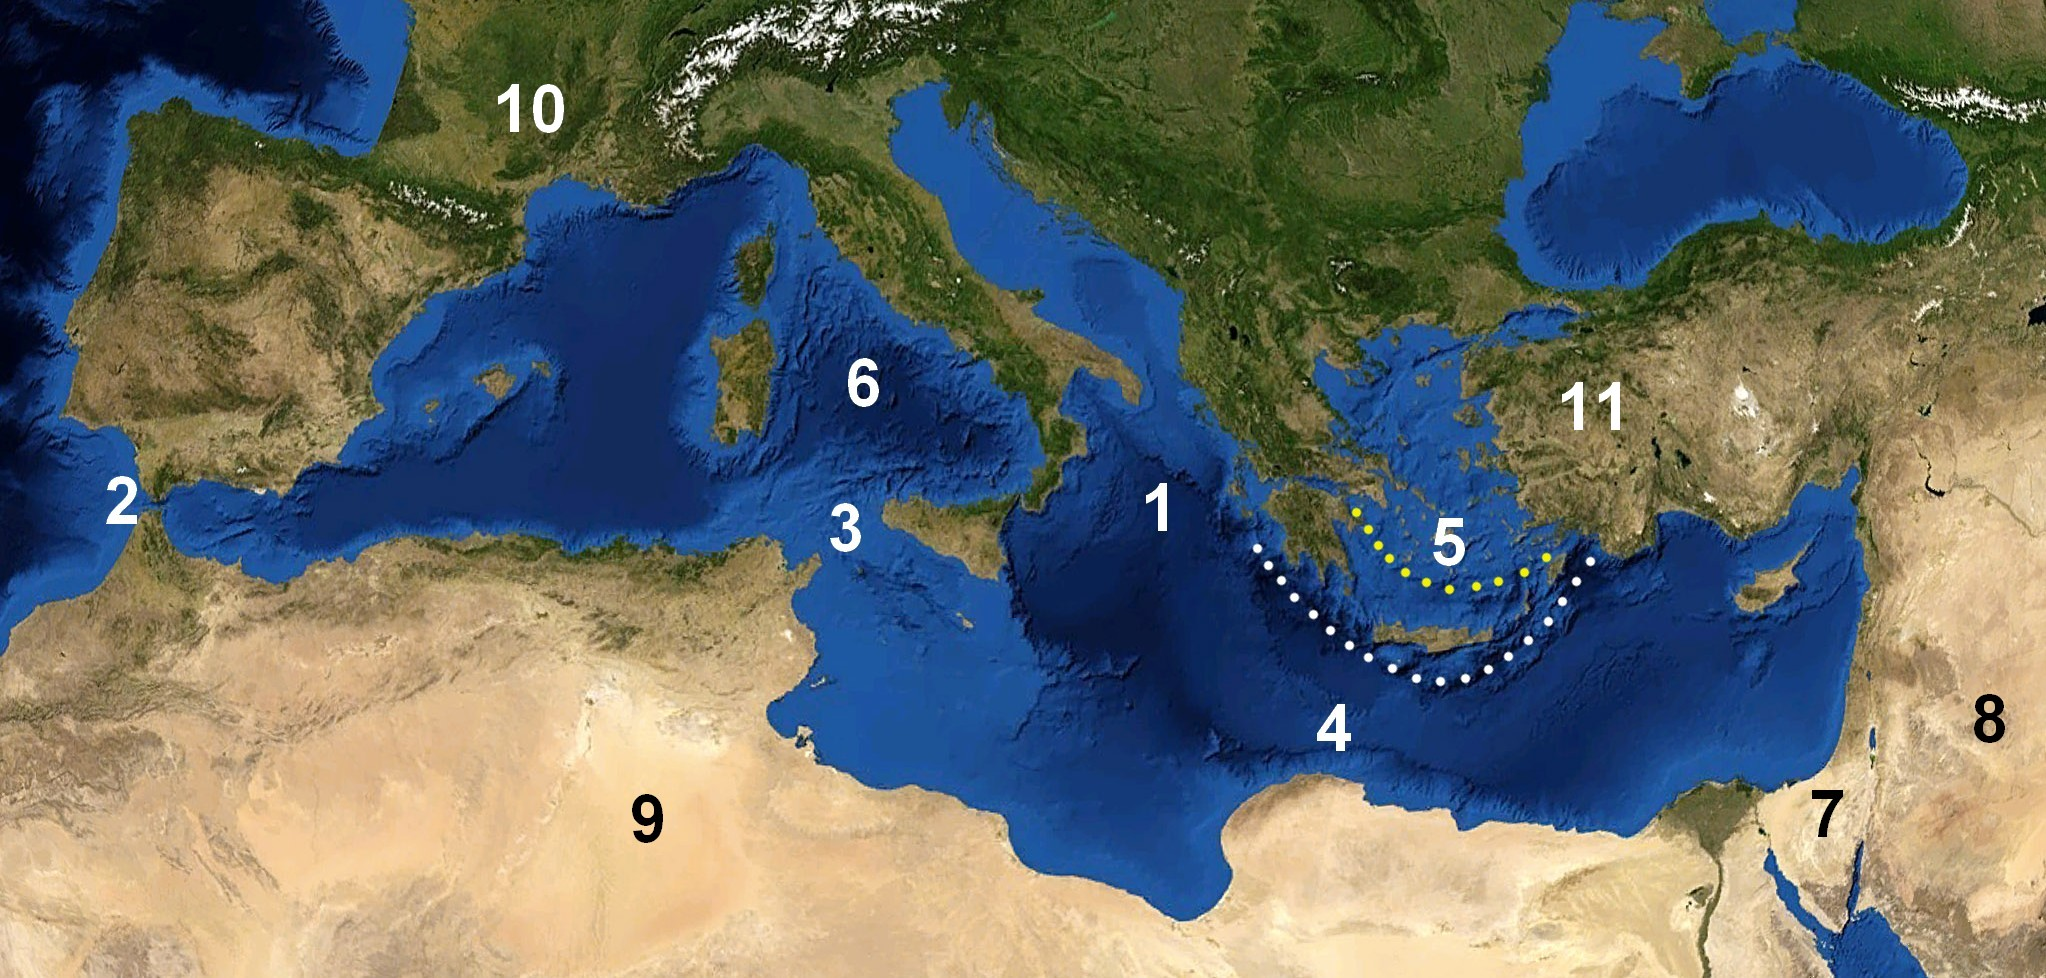 Blank map of mediterranean basin